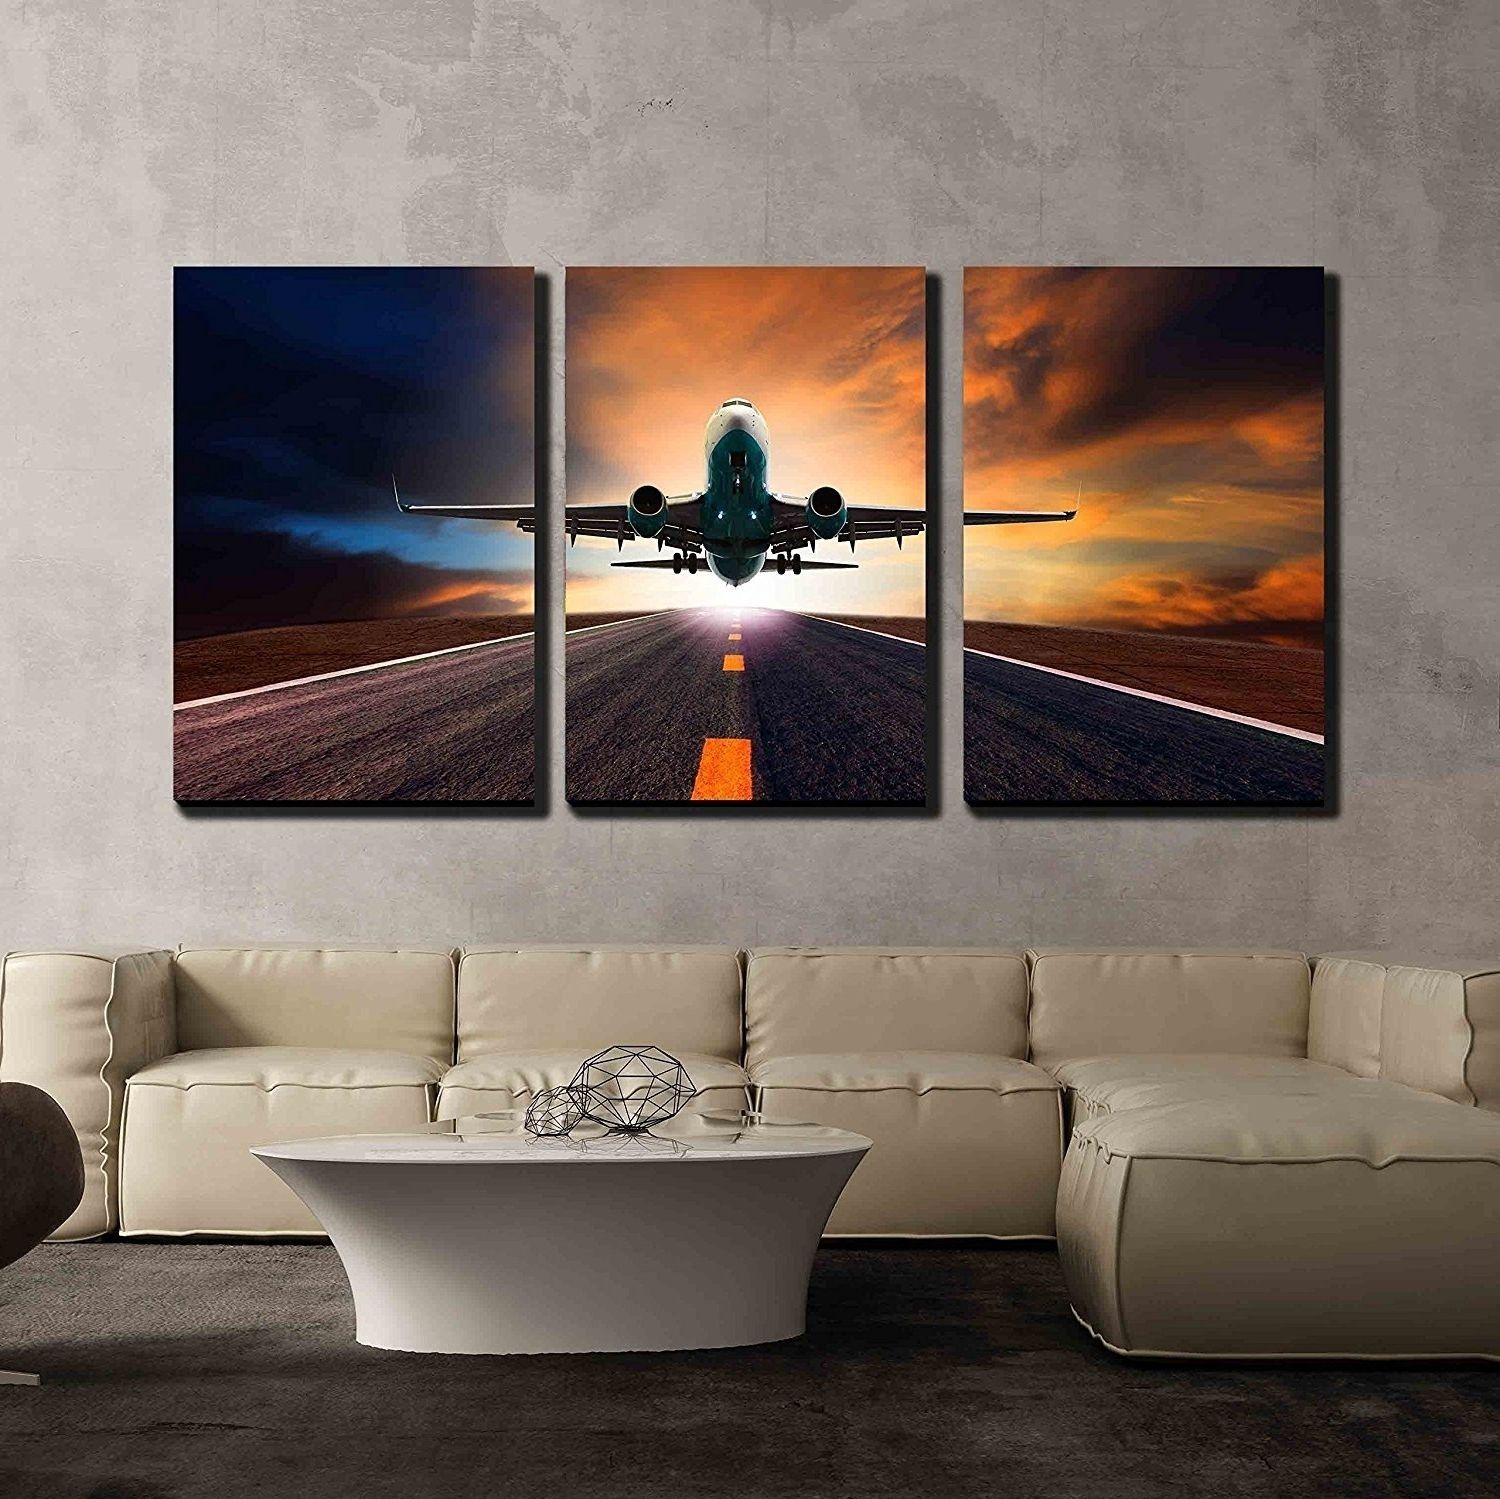 Incredible View Photos Of Multi Piece Canvas Wall Art Showing Pict Regarding Most Up To Date Multi Piece Wall Art (View 13 of 20)